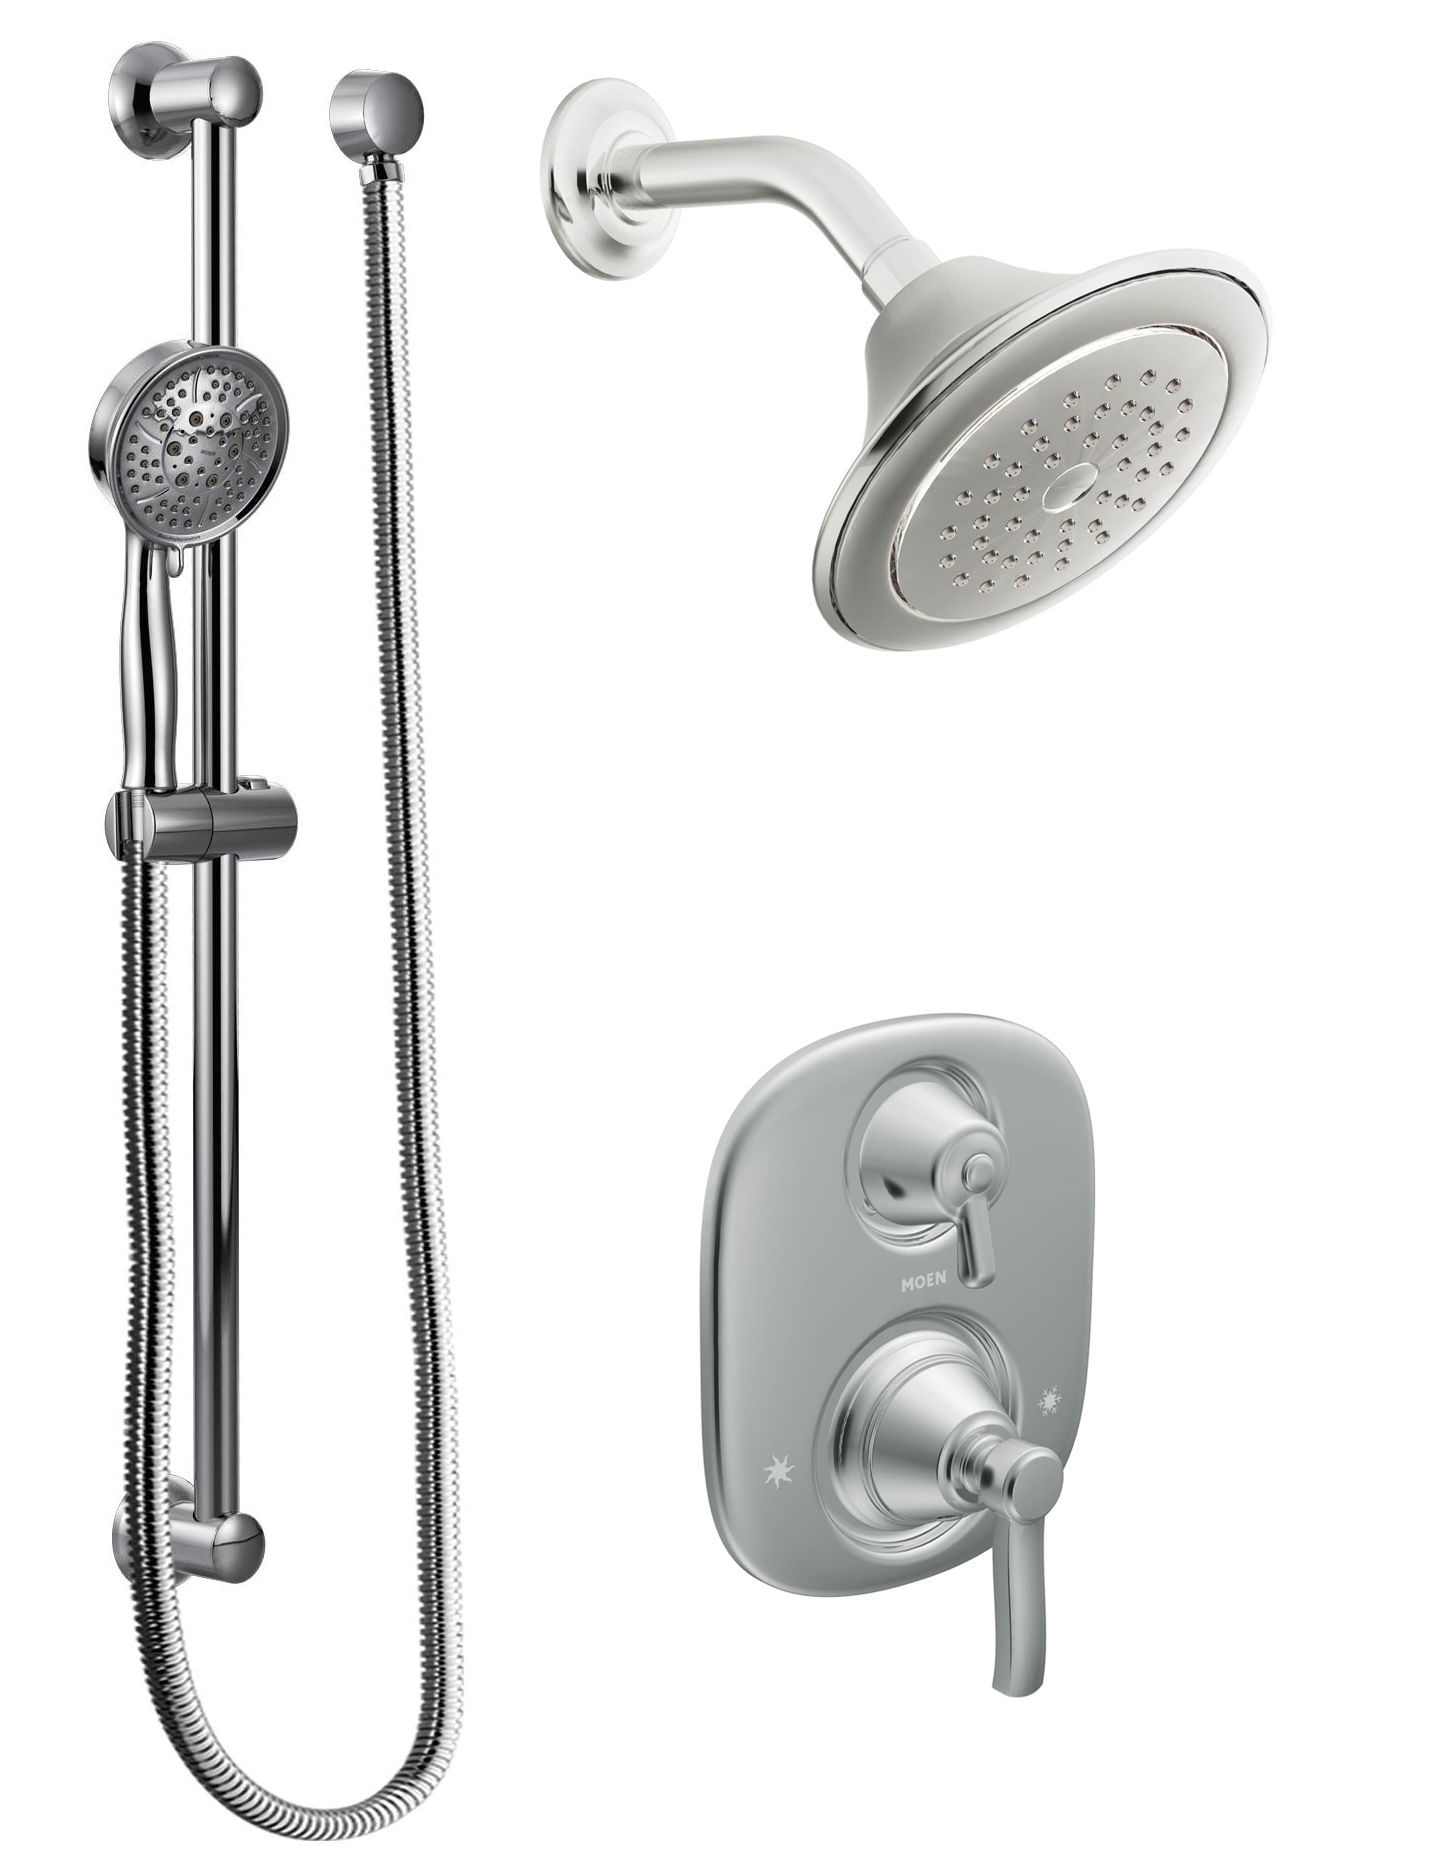 faucets faucet valve trim posi brushed pressure single the temp handle less balanced nickel shower moen com brantford collection from head with